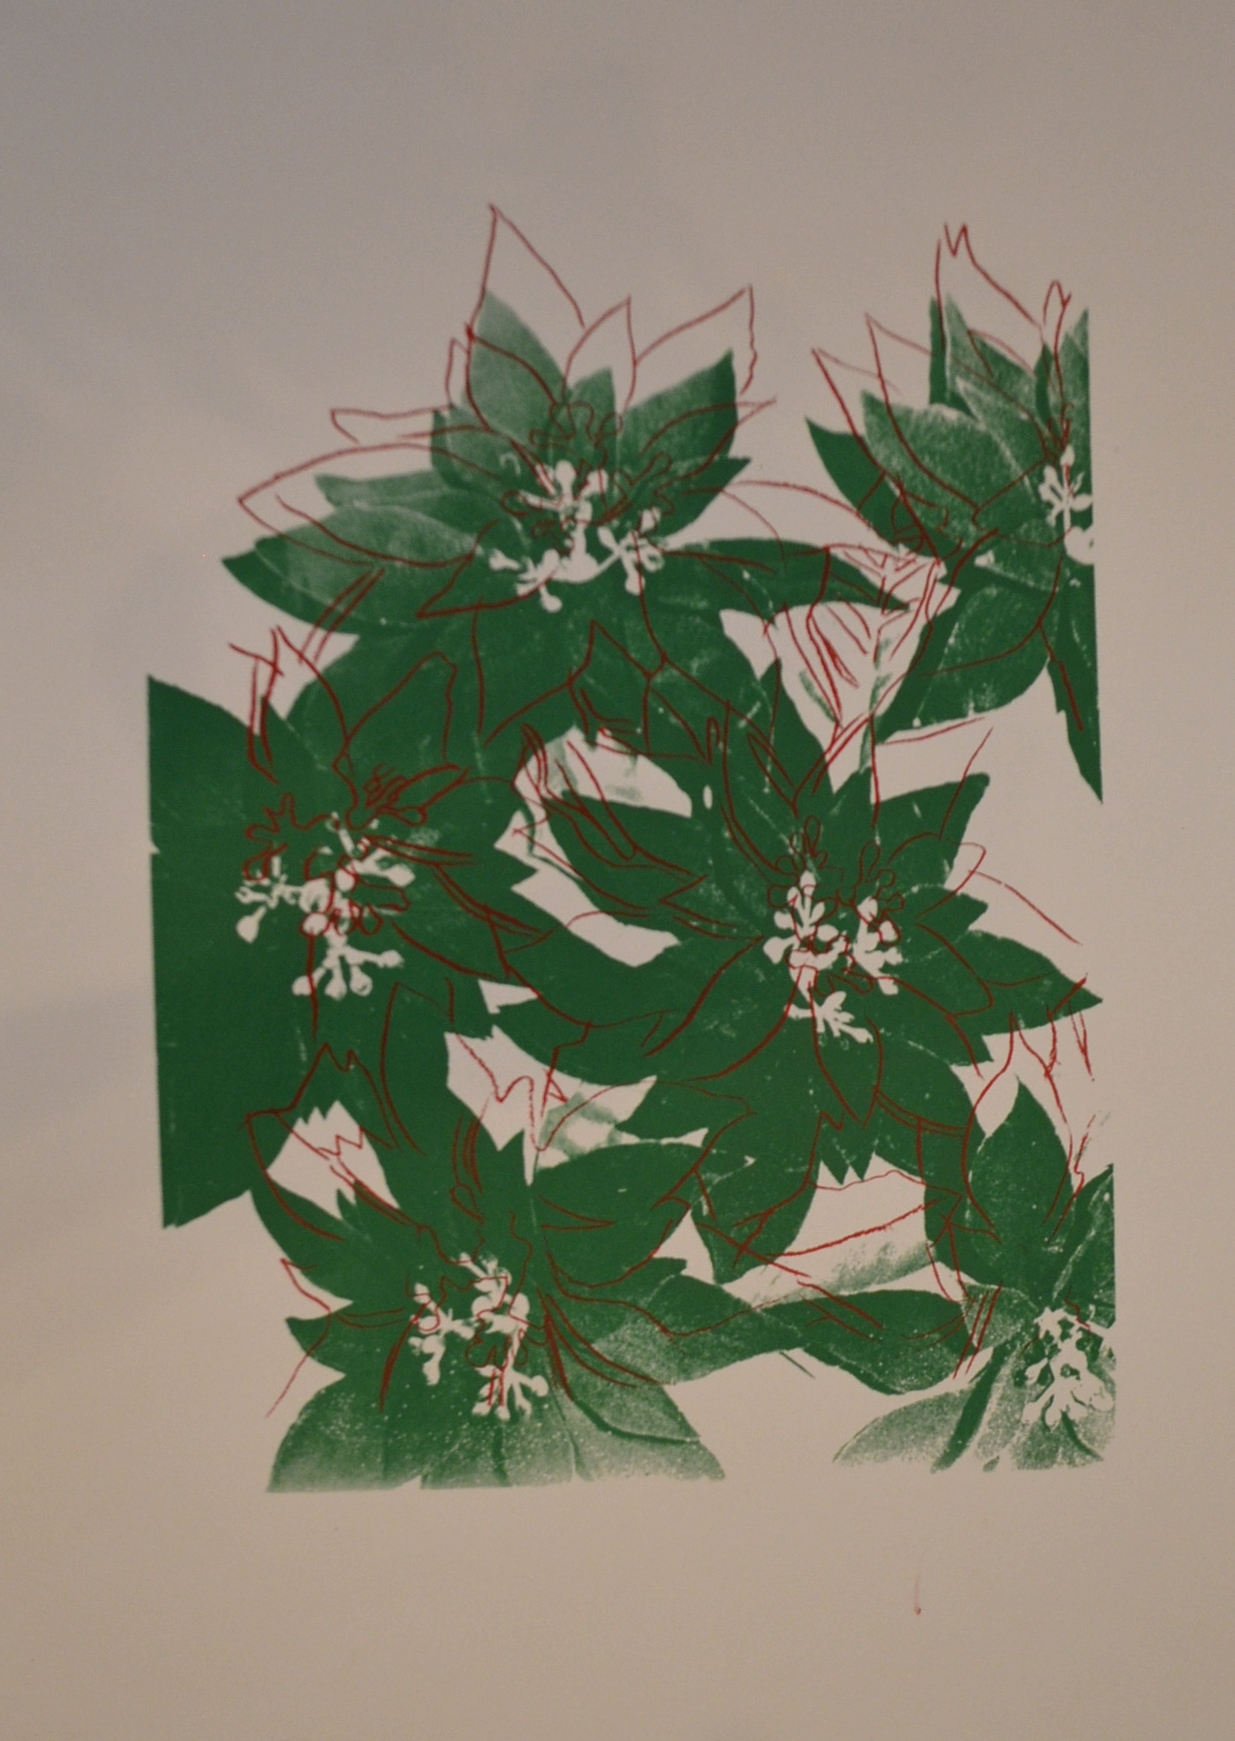 additional information for andy warhol's red and green poinsettias